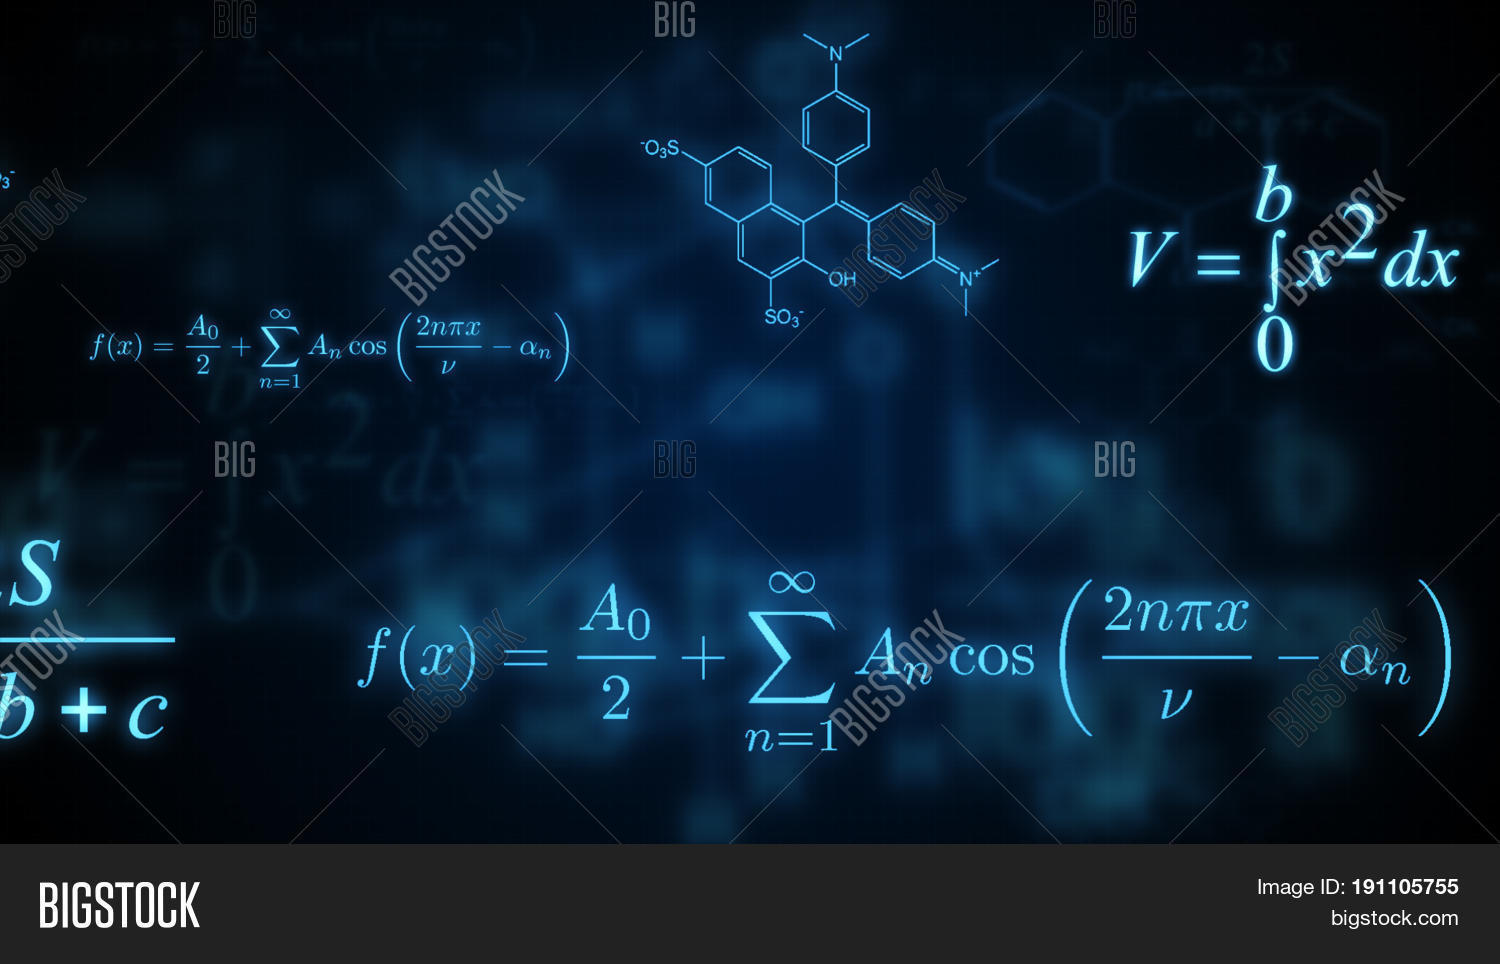 abstract,algebra,background,board,book,chemistry,classroom,college,design,drawing,education,einstein,equation,formula,future,futuristic,geometry,glow,graphic,grid,handwriting,illustration,learn,line,math,mathbackground,mathematical,mathematics,paper,pattern,pencil,physics,school,science,seamless,sign,sketch,student,study,symbol,teacher,technical,technology,text,texture,trigonometry,university,wallpaper,white,zzzajmaabbgngbgjgocacidadldadadldbdfdldadacj